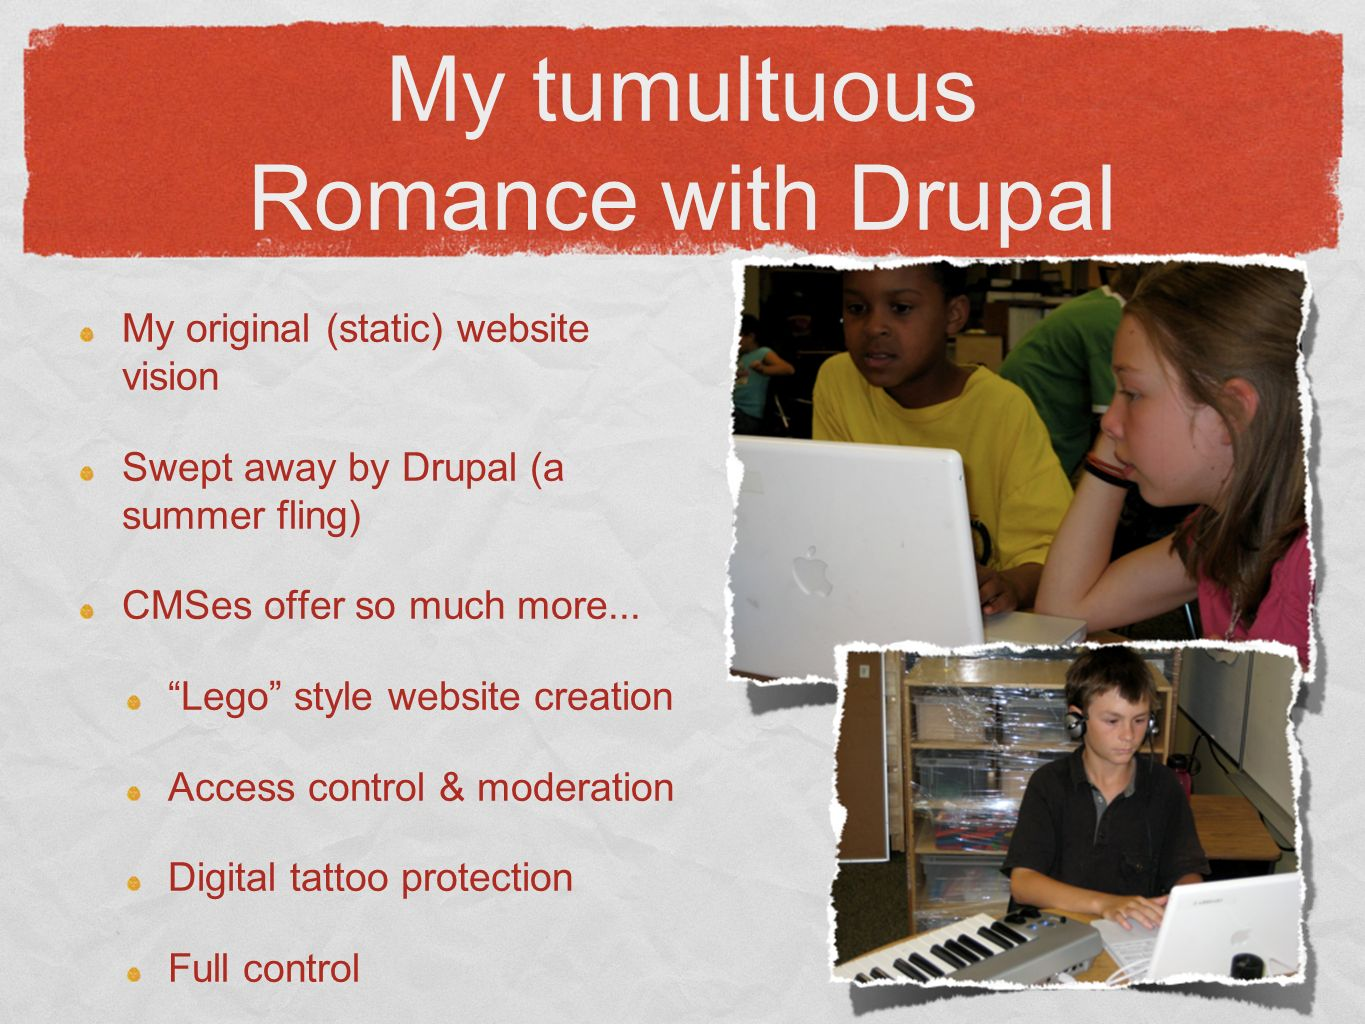 My tumultuous Romance with Drupal My original (static) website vision Swept away by Drupal (a summer fling) CMSes offer so much more...